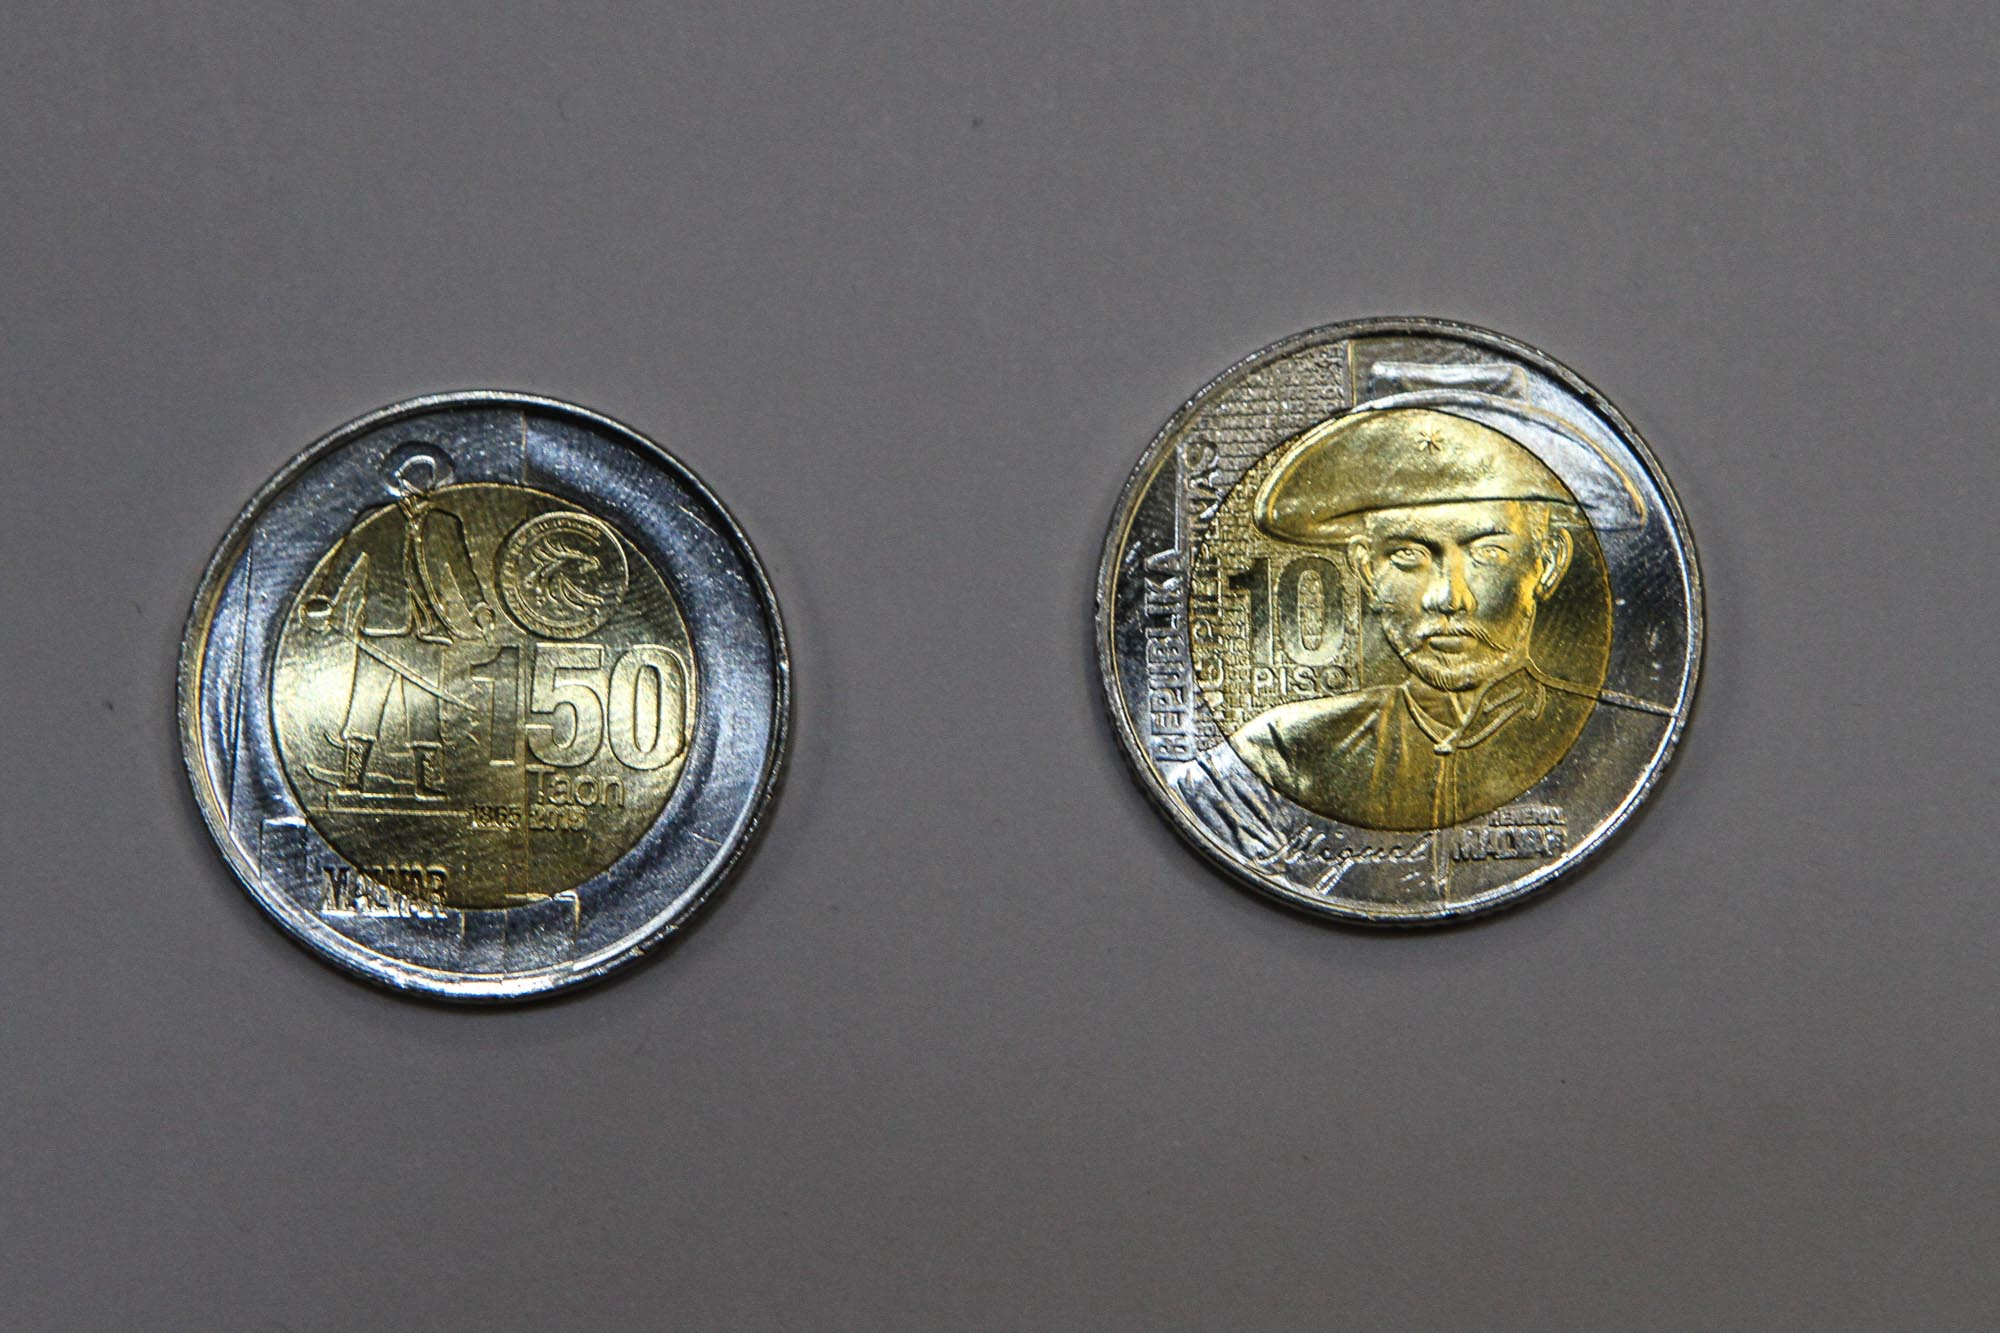 BSP Issues Limited Edition P10-Miguel Malvar Coin